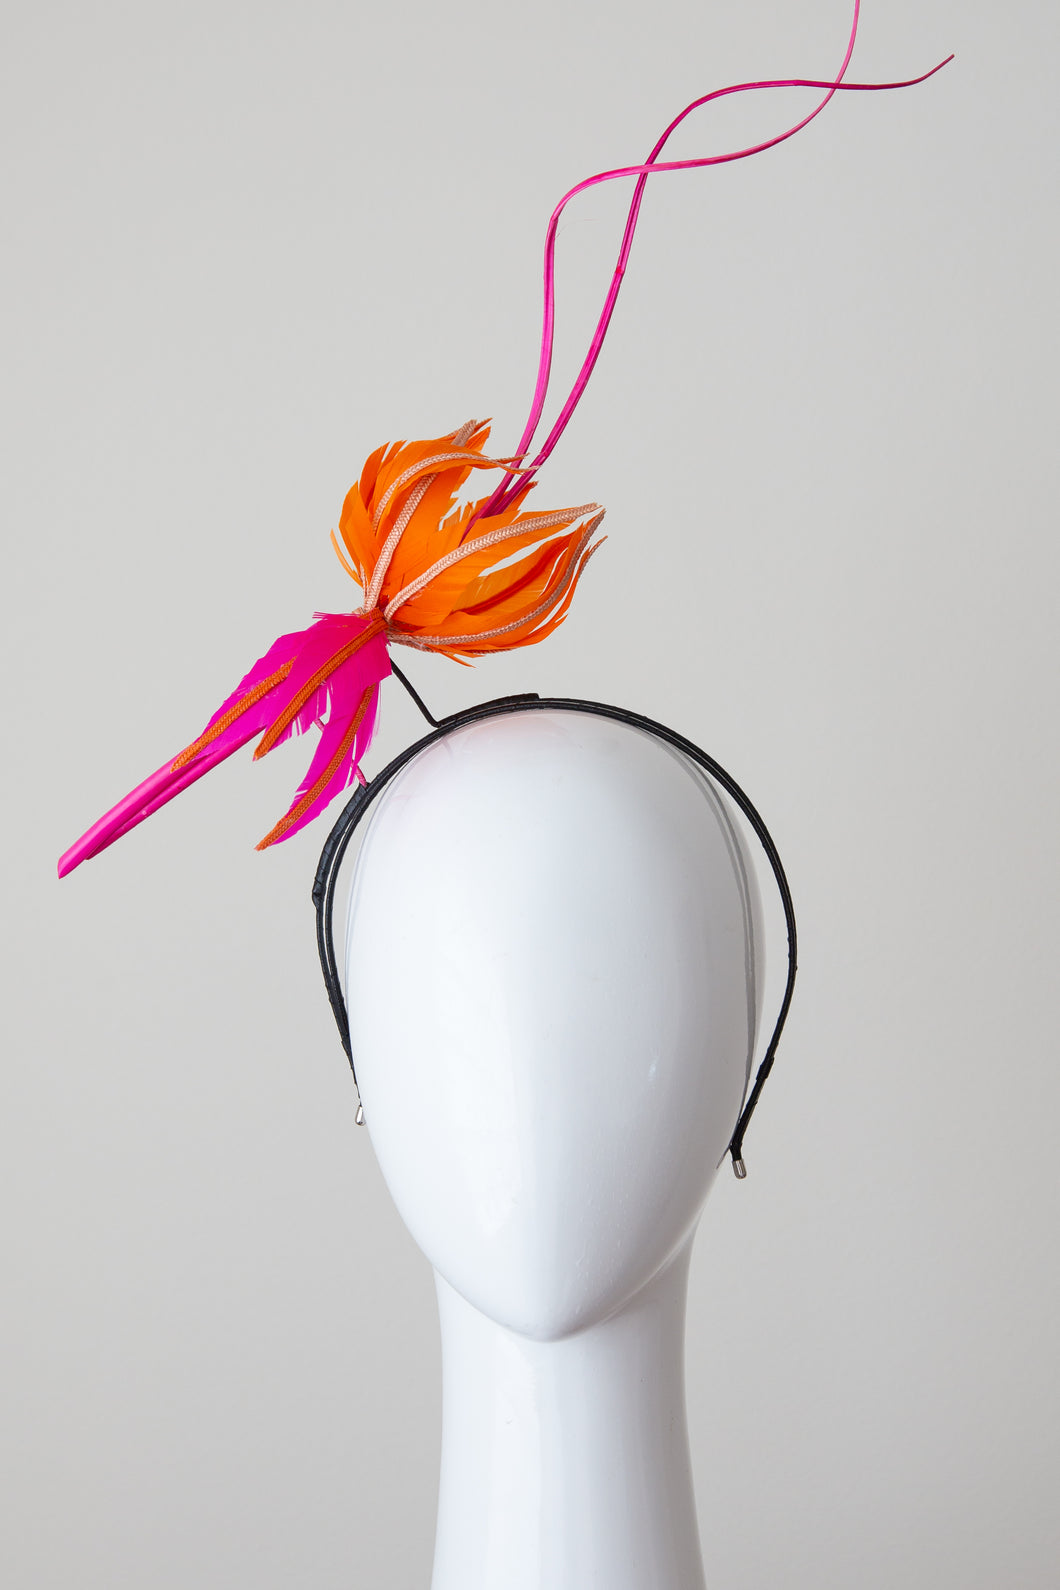 FINCH-Hot pink and orange feather flower on a headband